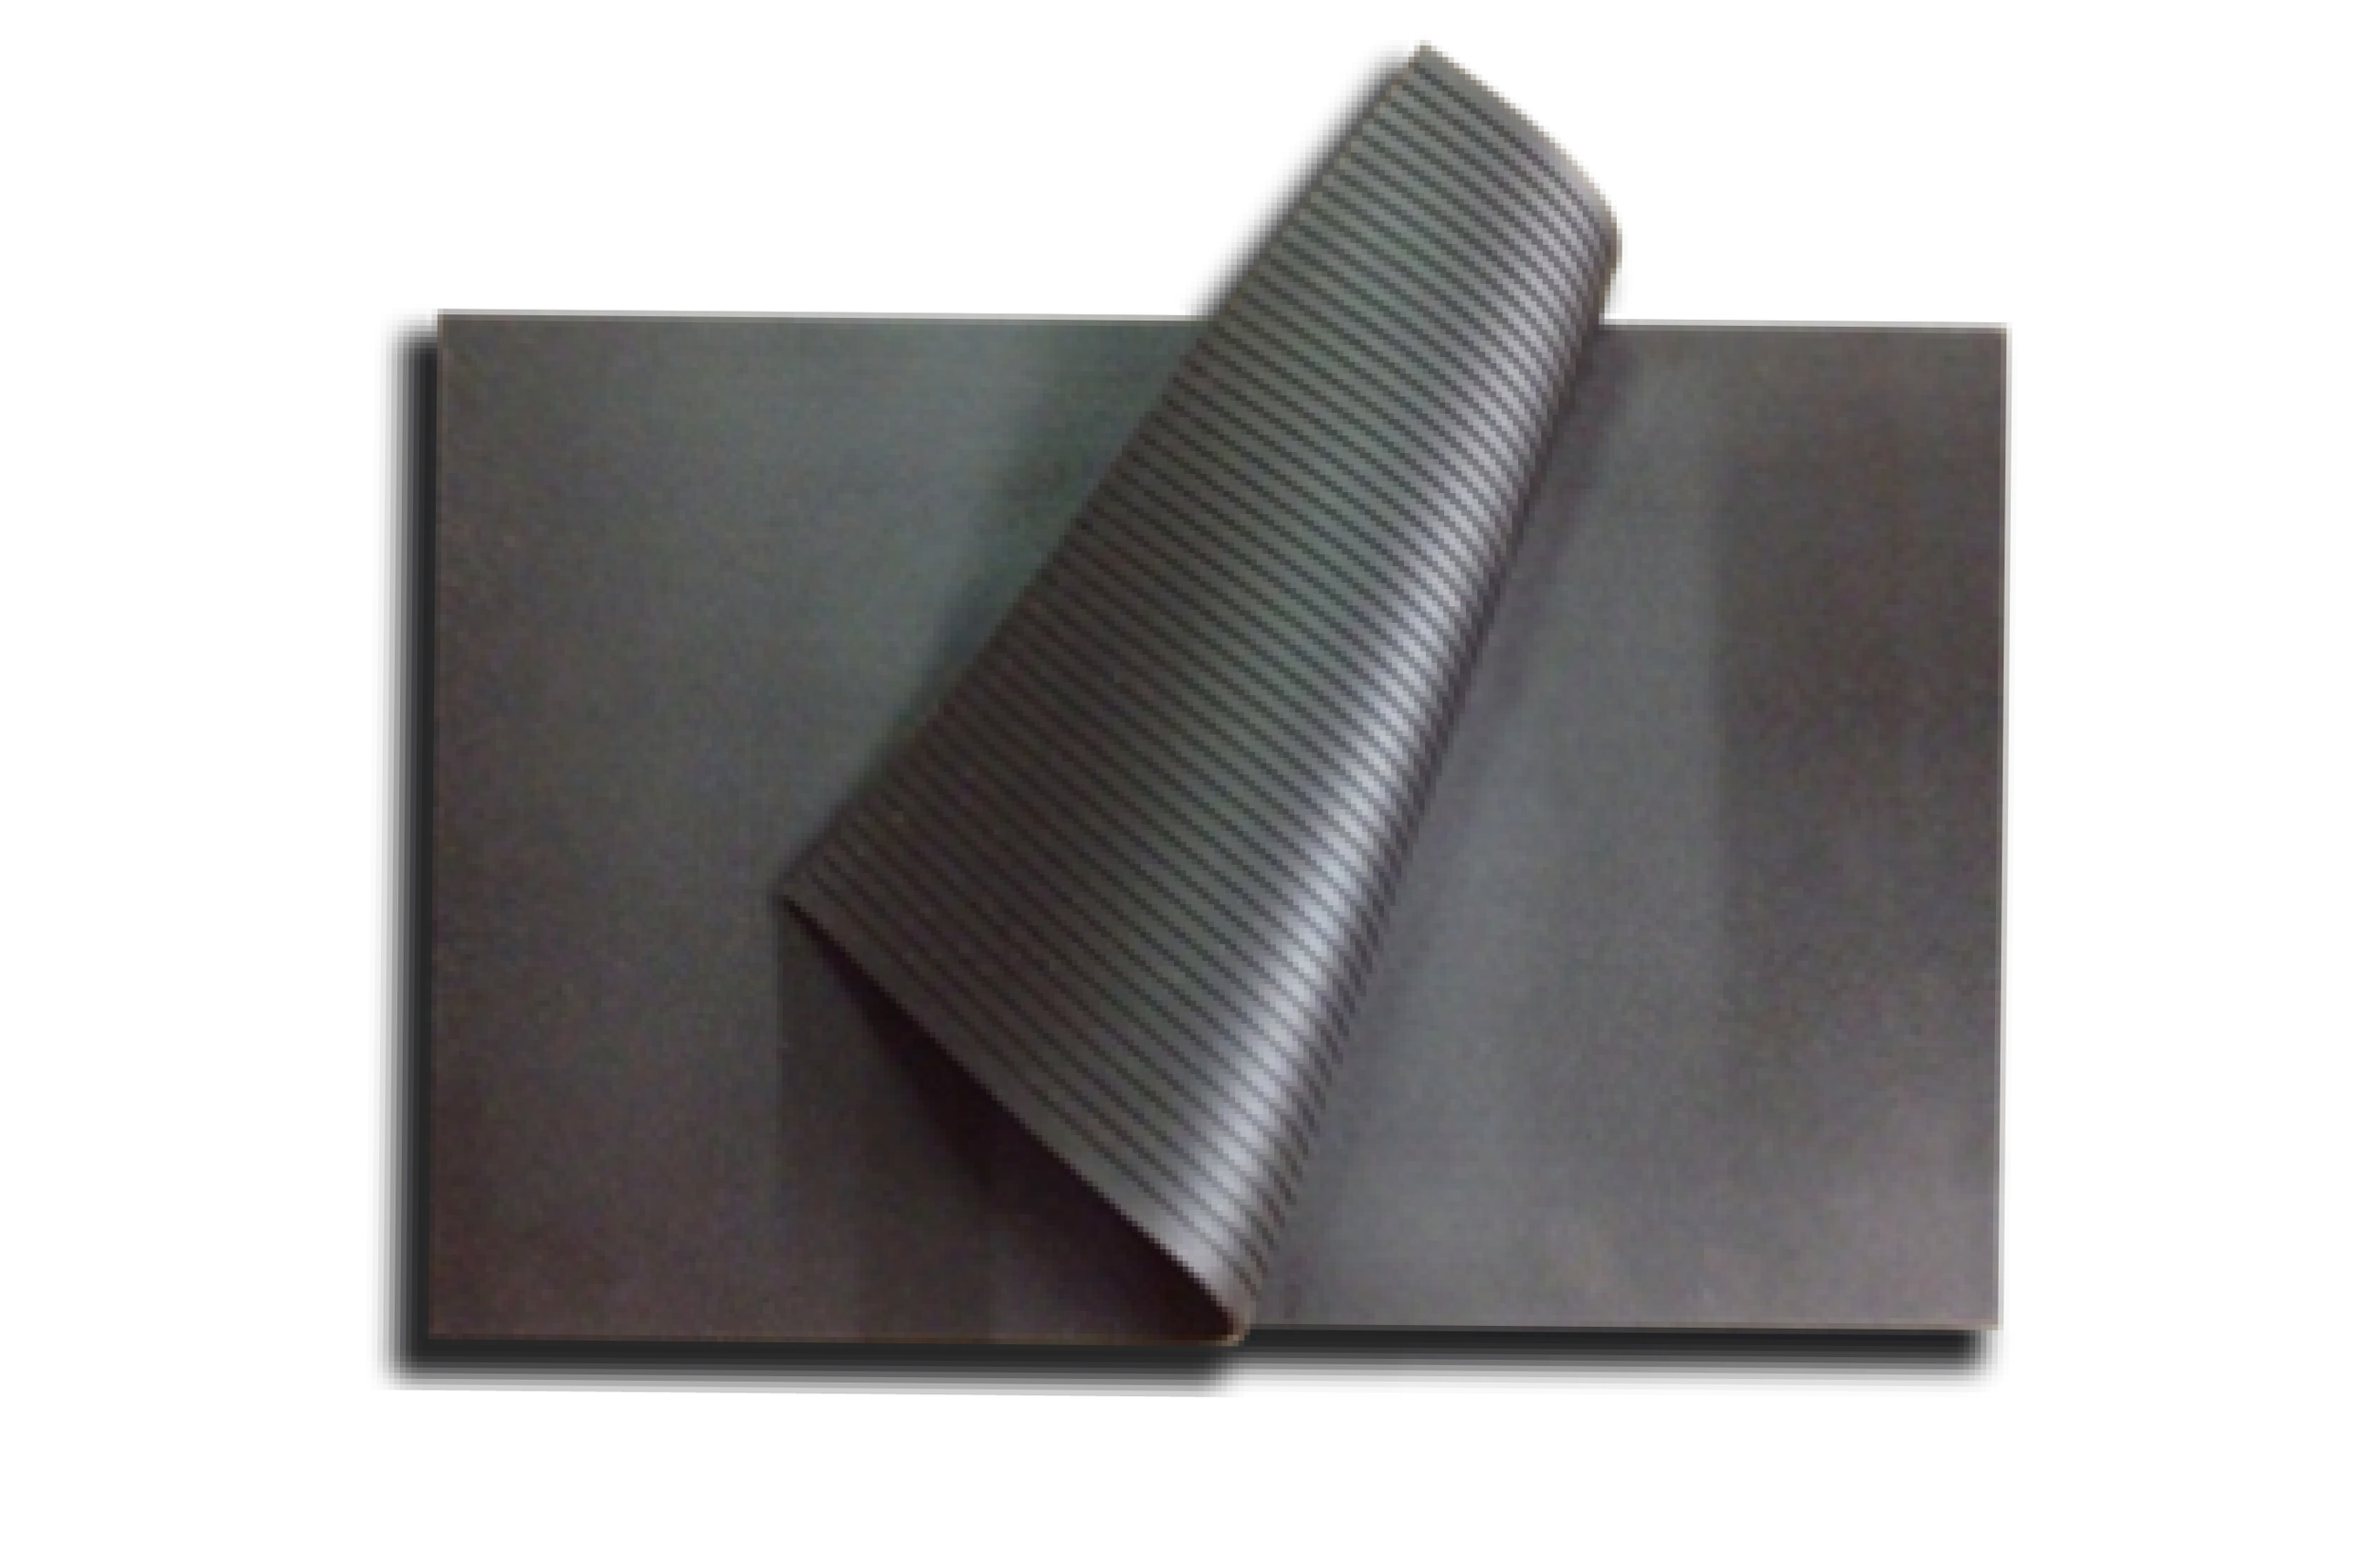 Recycled-Rubber-Mats.jpg